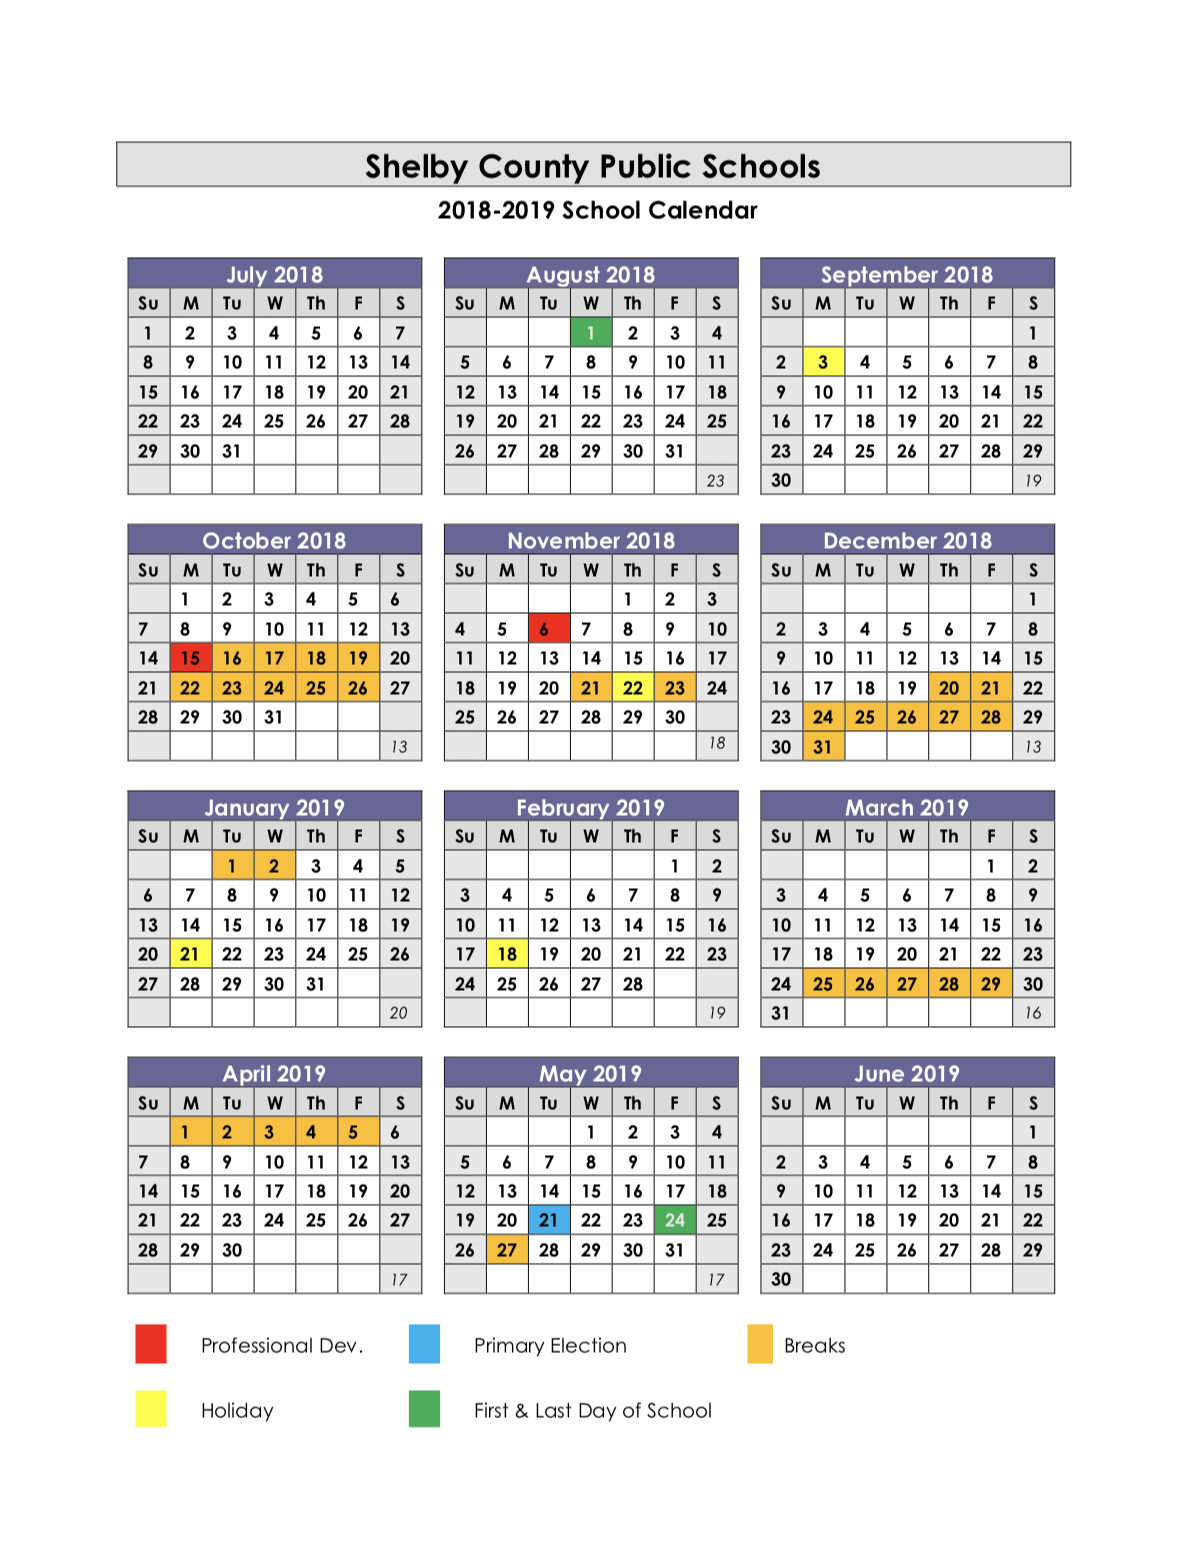 Next Year Calendar 2019 Malayalam With School Calendars 2018